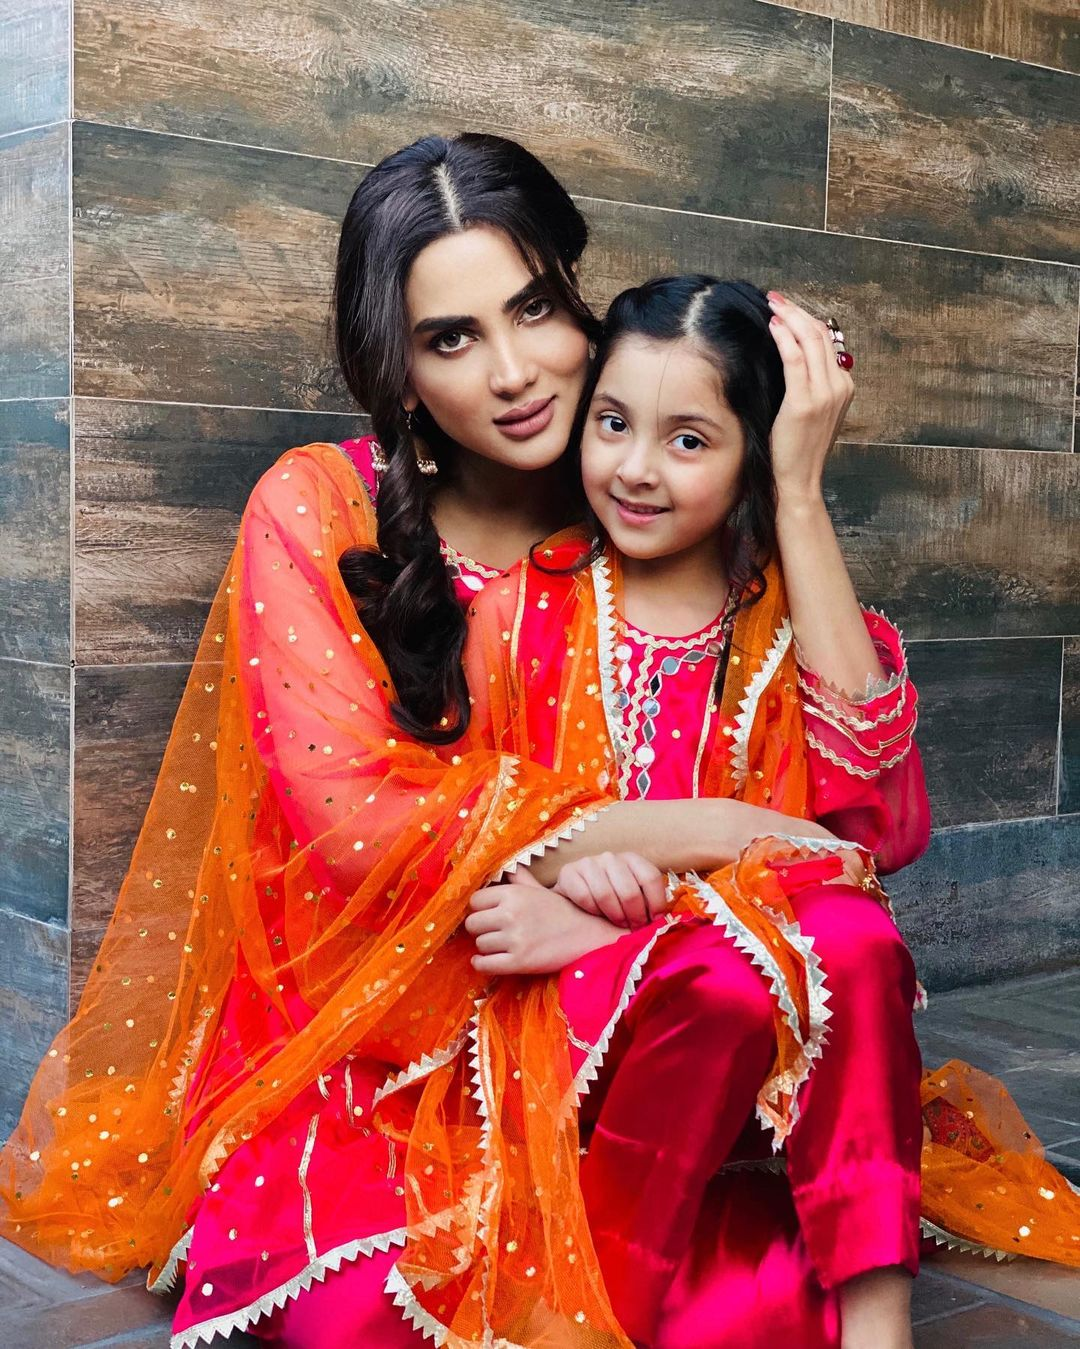 Actress Fiza Ali with her Cute Daughter Faraal - Adorable Pictures